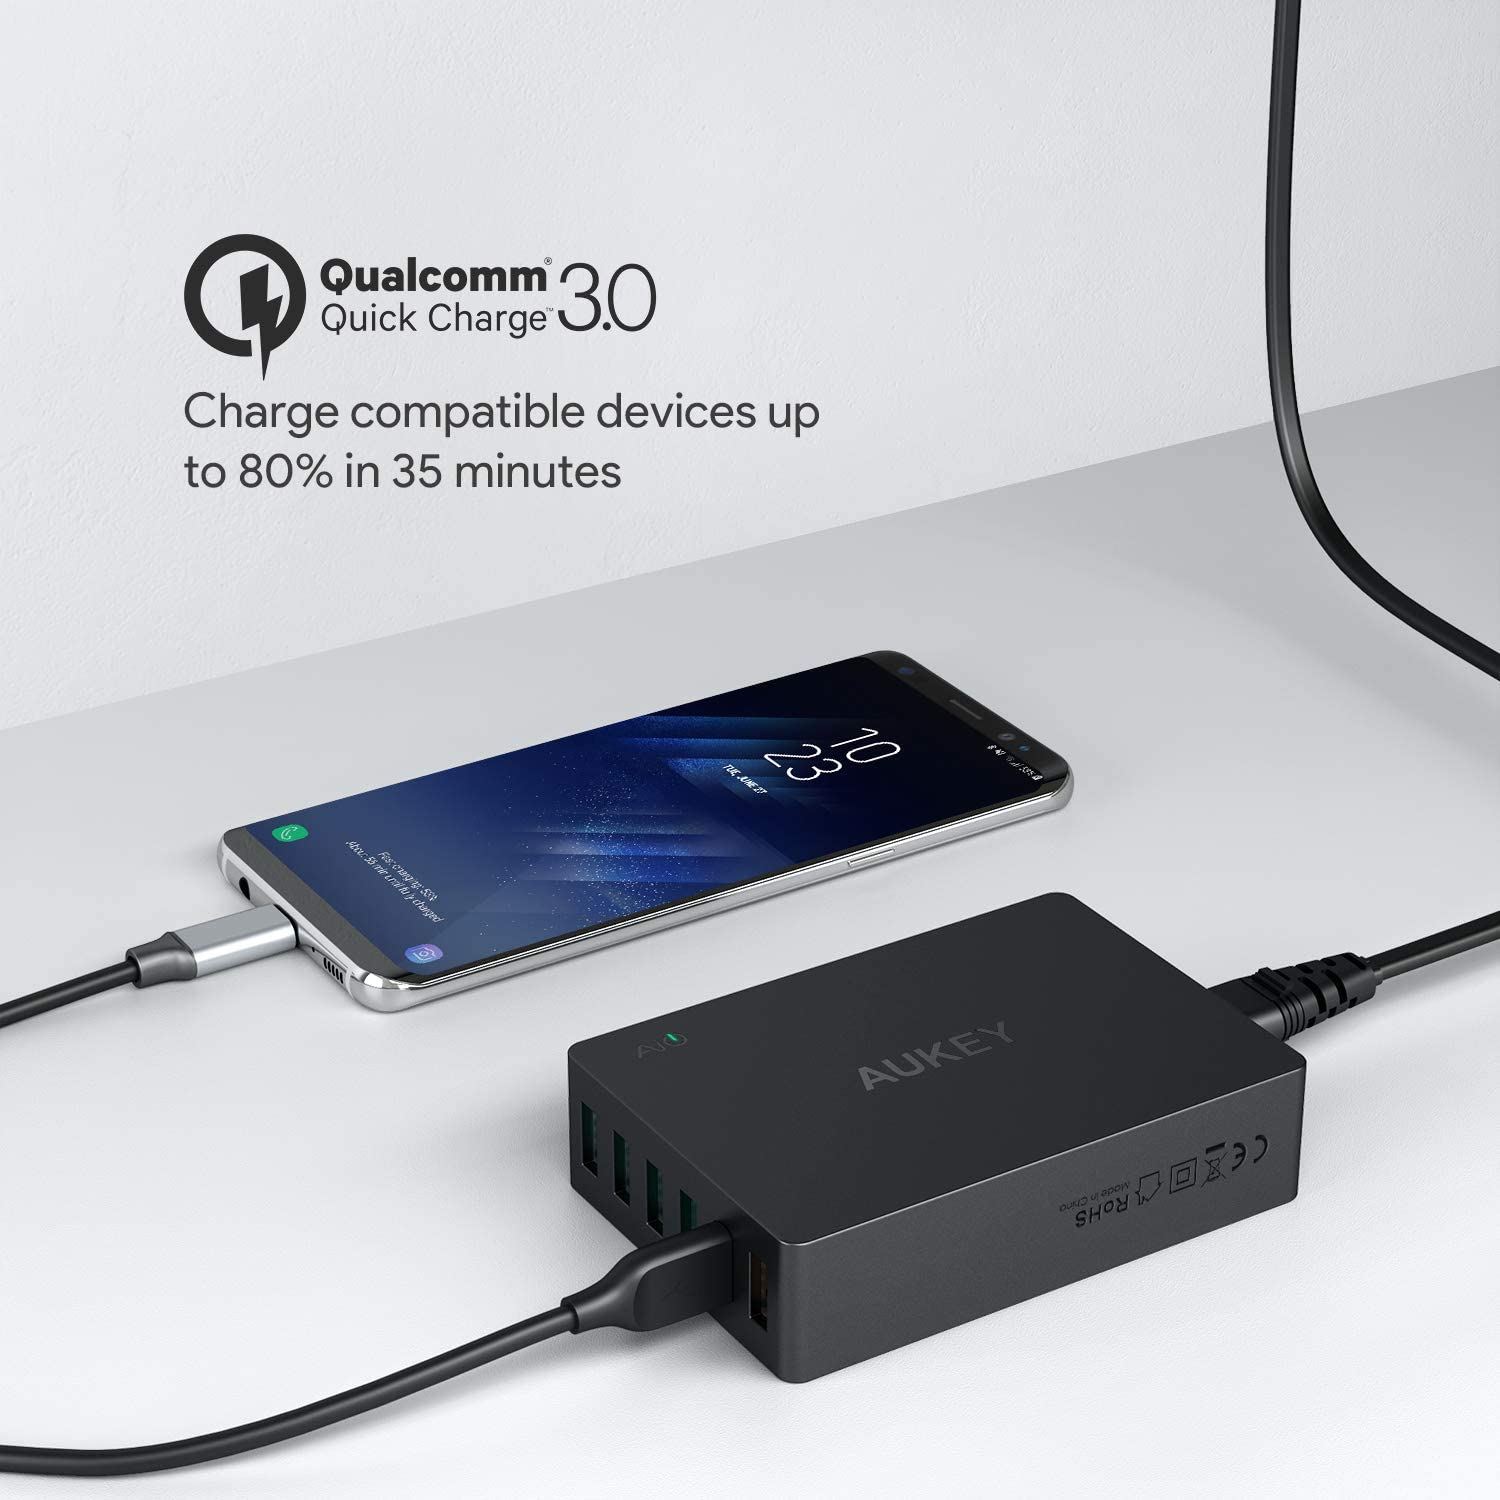 AUKEY Quick Charge 3.0 6-Port USB Wall Charger, 60W USB Charging Station Compatible with Samsung Galaxy Note8, iPhone 11/11 Pro/Max, iPad Pro/Air, LG, ...